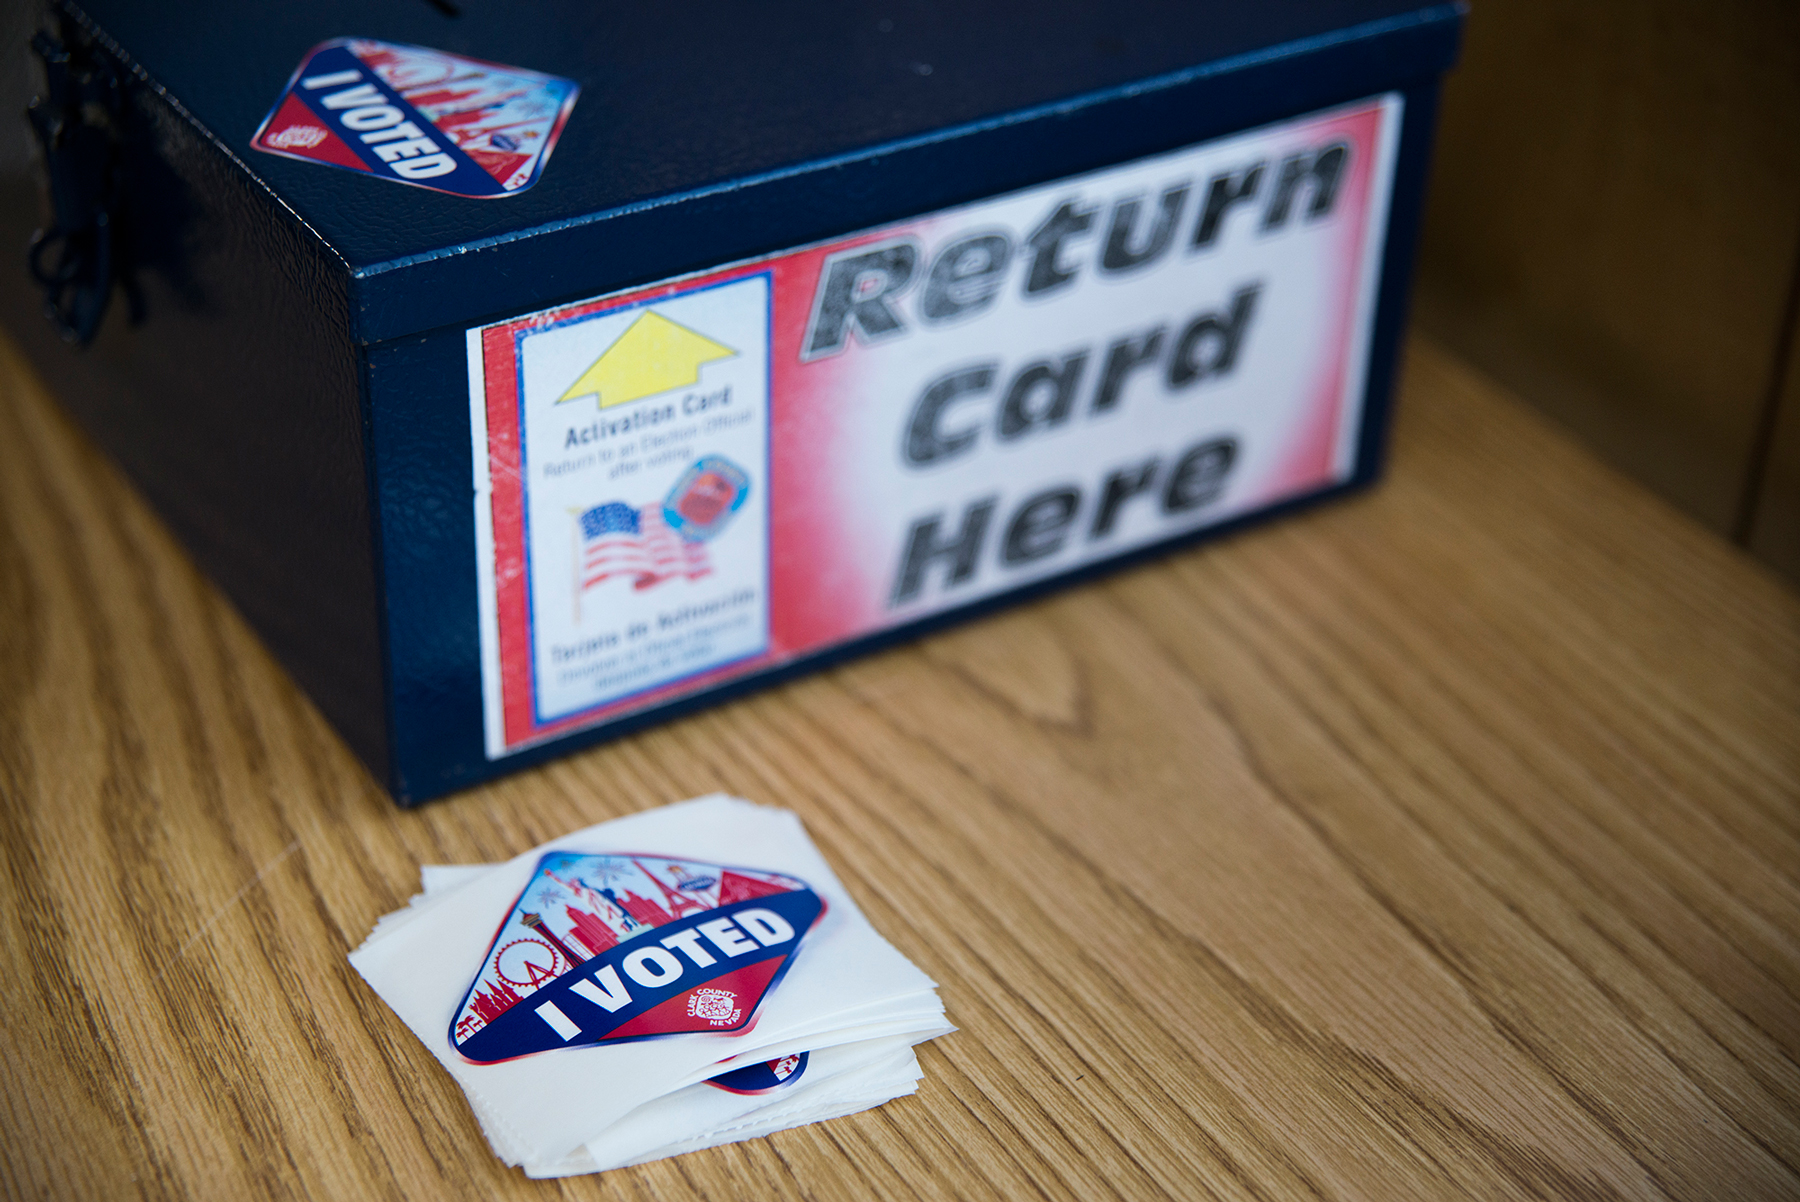 "After casting their ballots, voters in Clark County deposit the cards they use to vote in this box and receive an ""I voted"" sticker that resembles the Las Vegas welcome sign. (Roman Knertser/News21)"